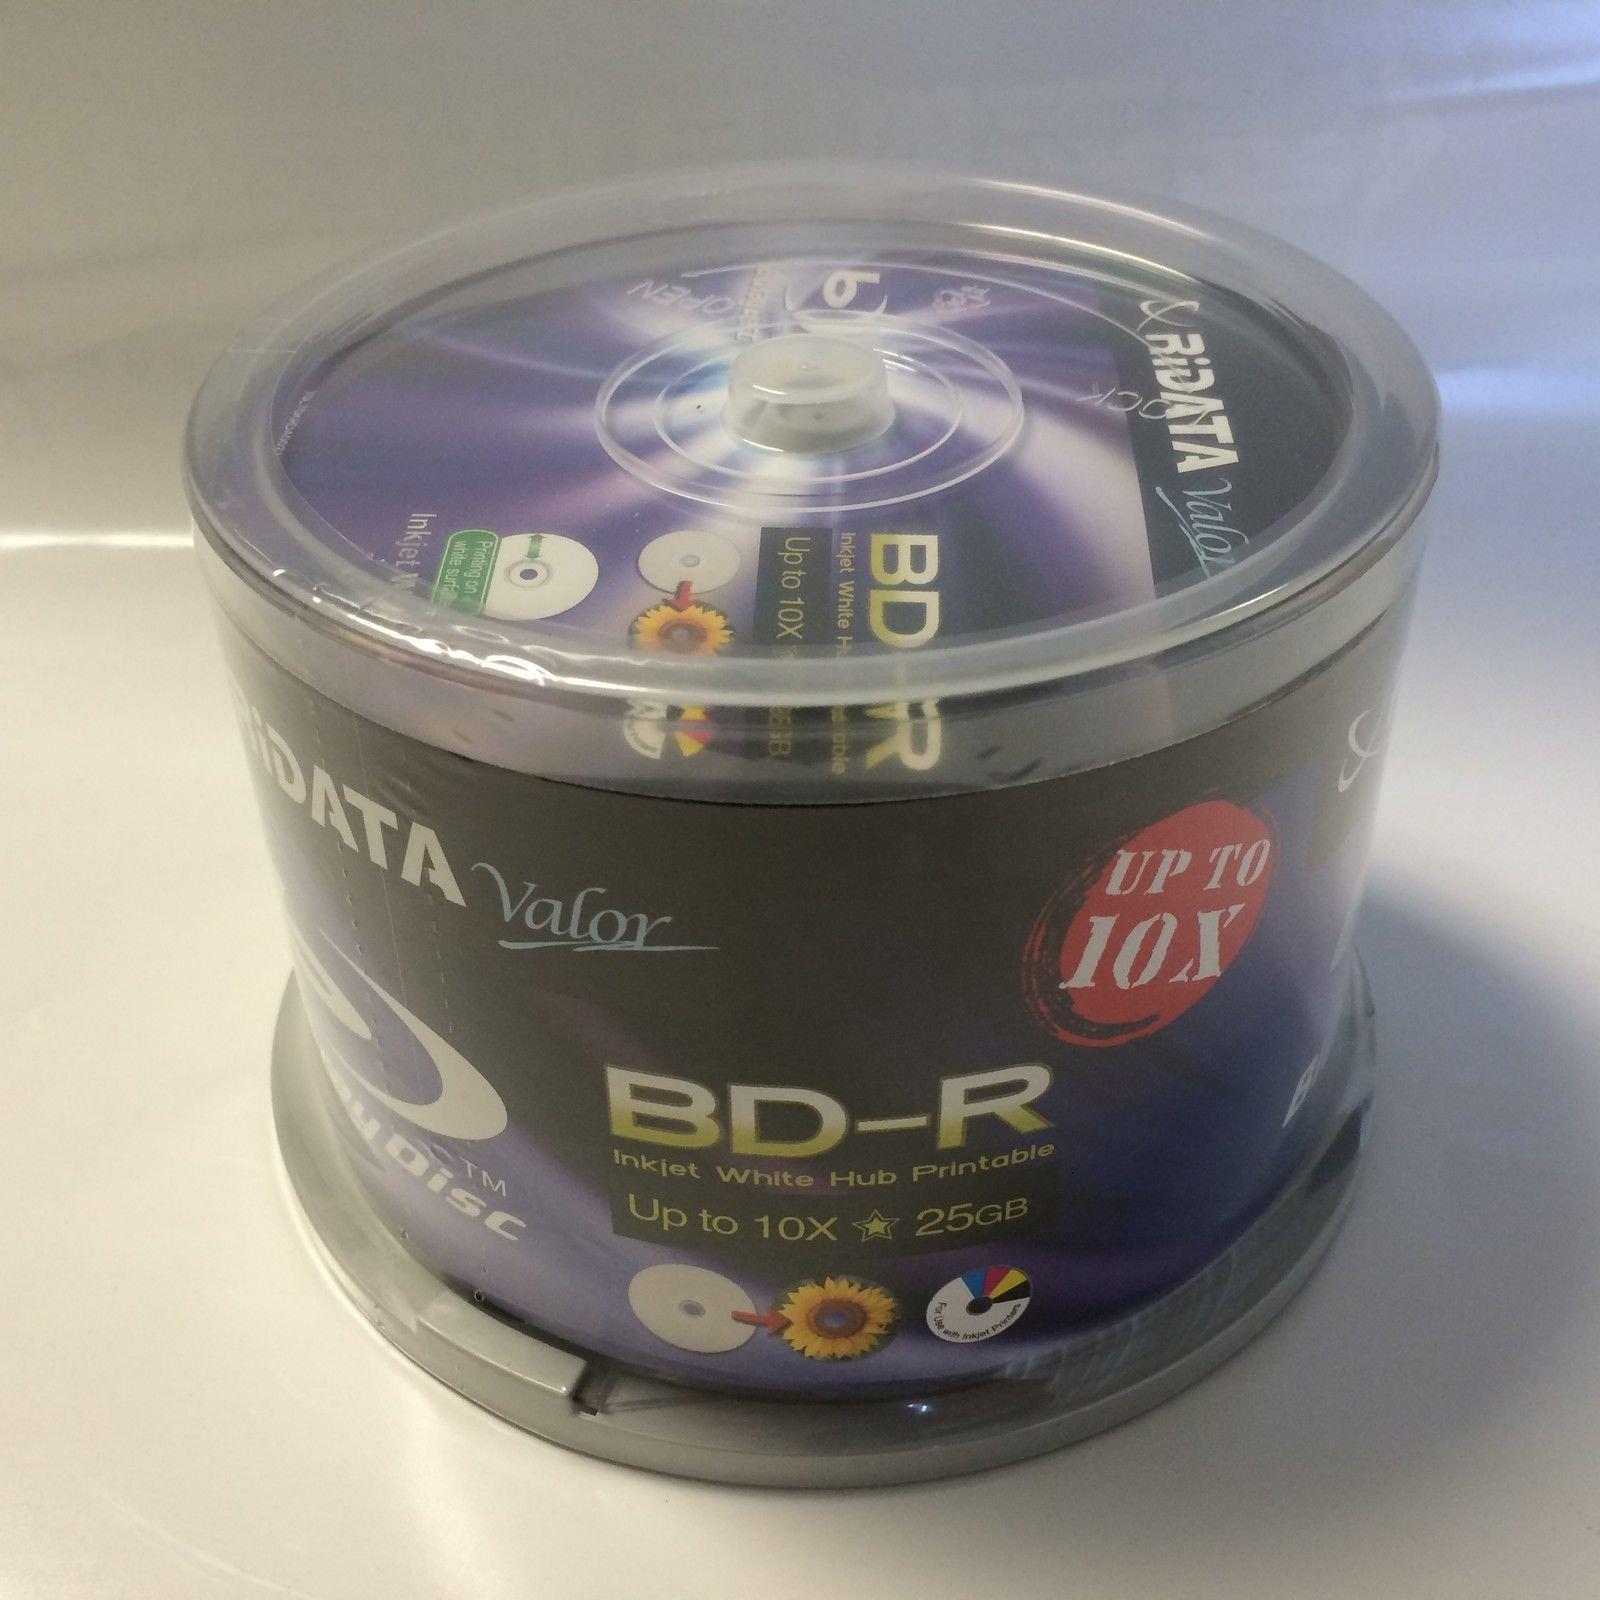 50 Ridata Valor White Inkjet Printable Blu-ray Bd-r Blank Disc 25gb up to 10x by Ridata